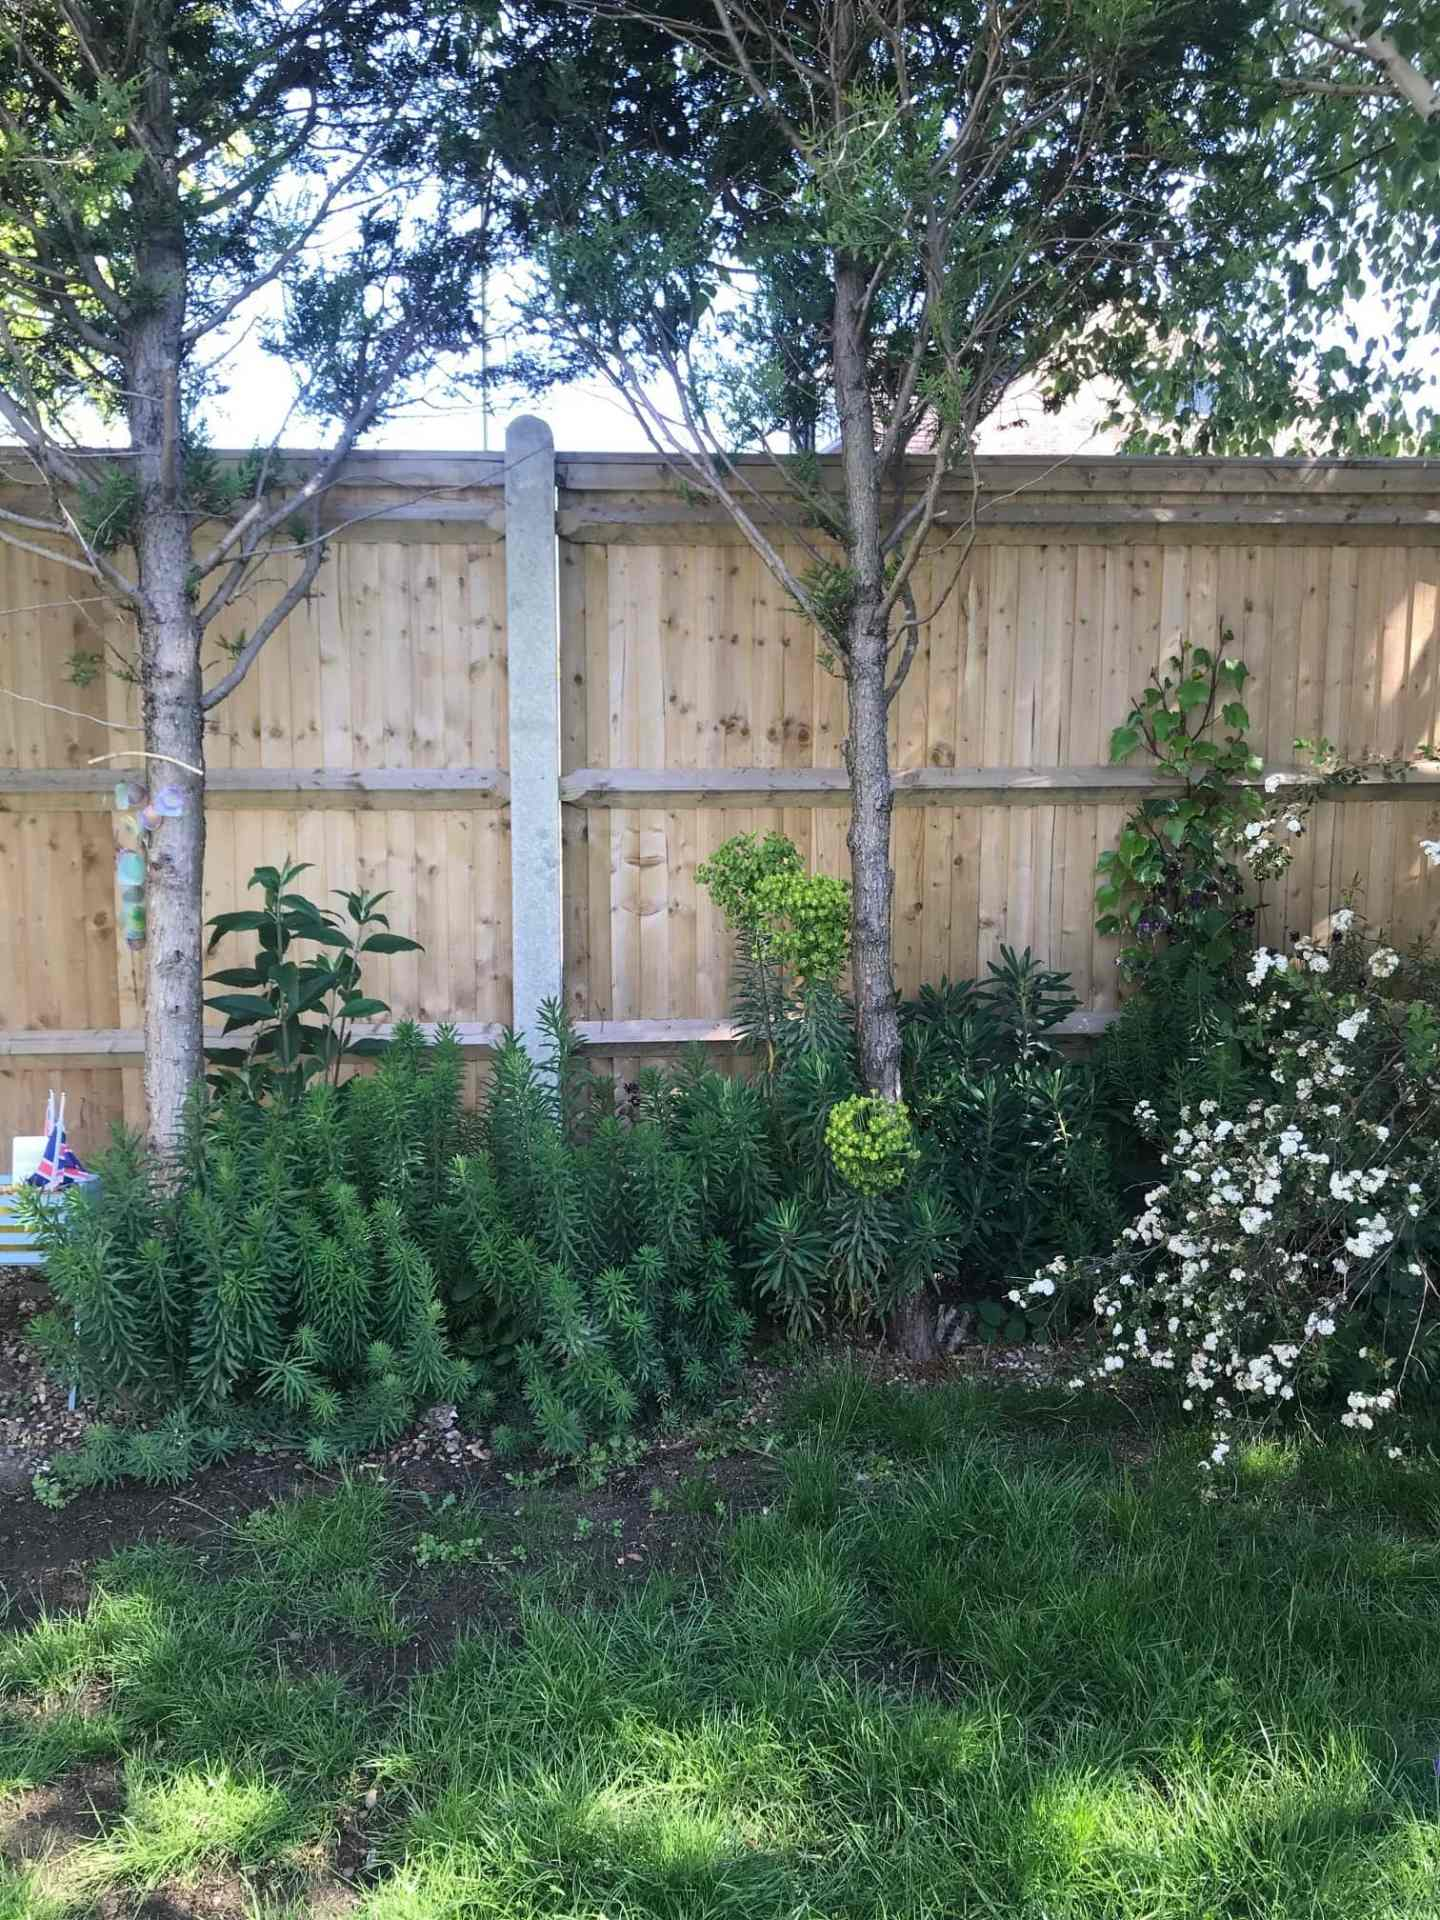 I present to you my fence! And patchy grass (we're working on it!)